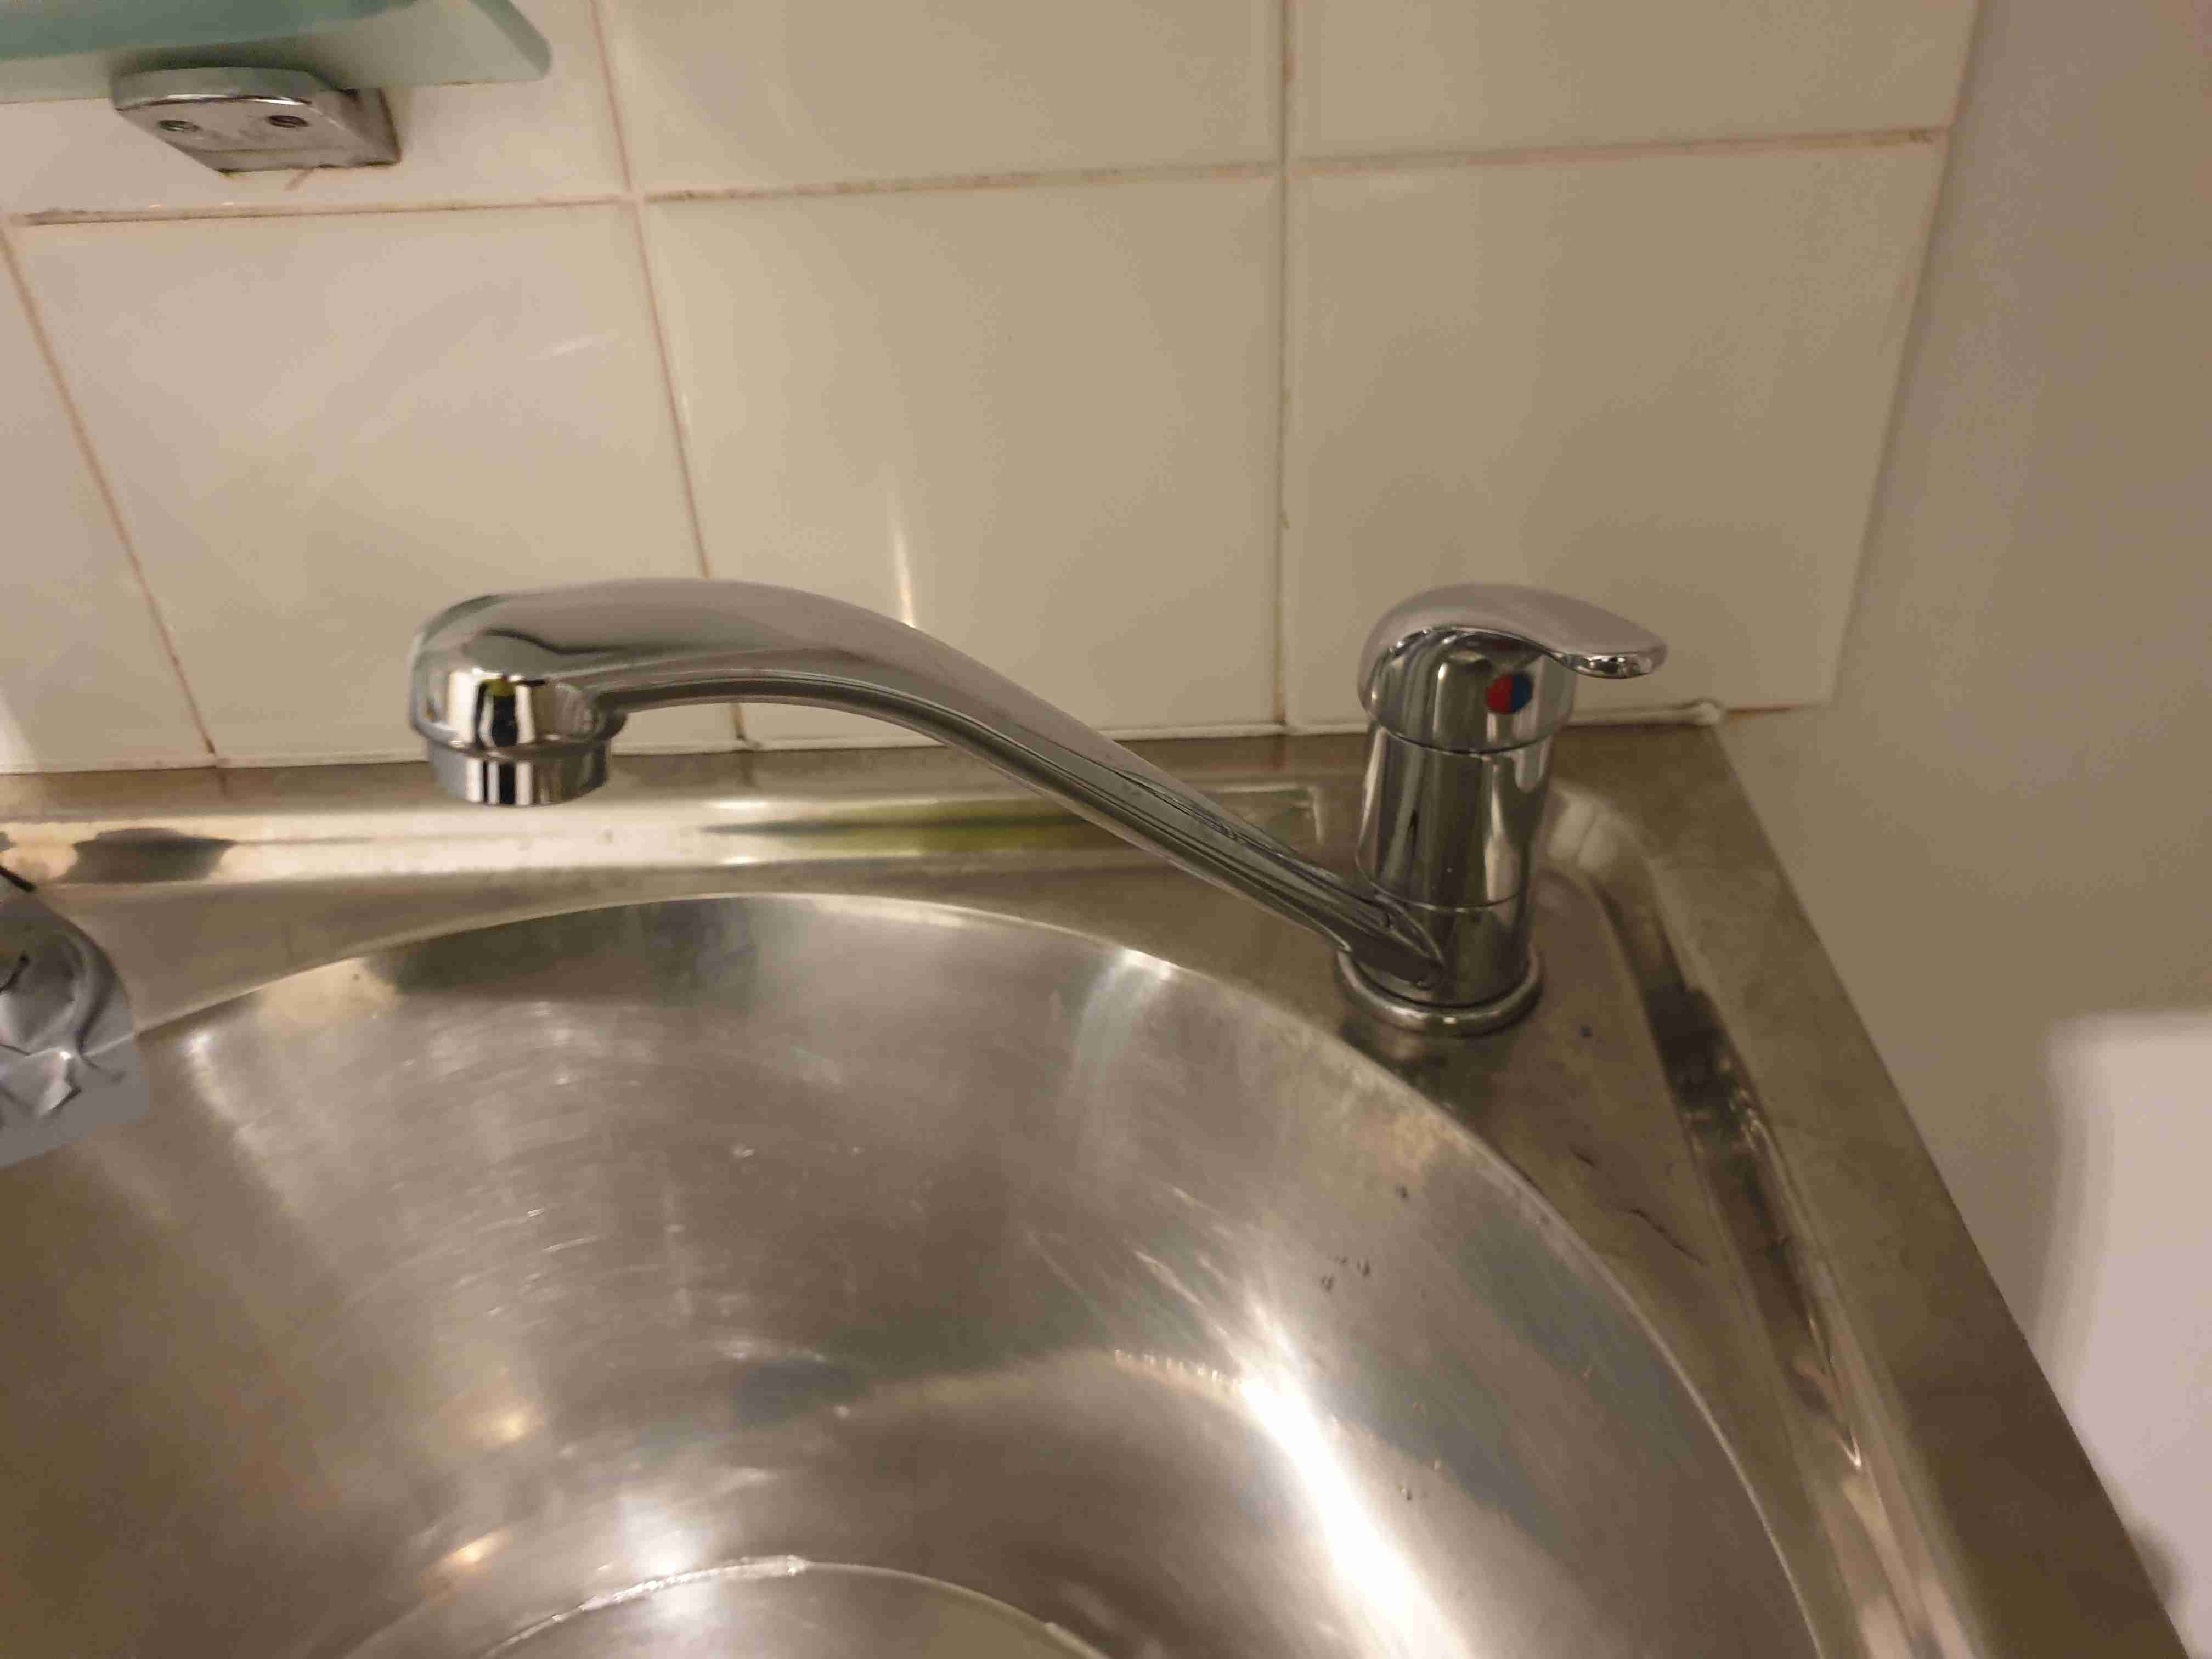 Leaking Tap Repairs - North Melbourne By P.A.D Plumbing & Maintenance Pty Ltd via i4Tradies